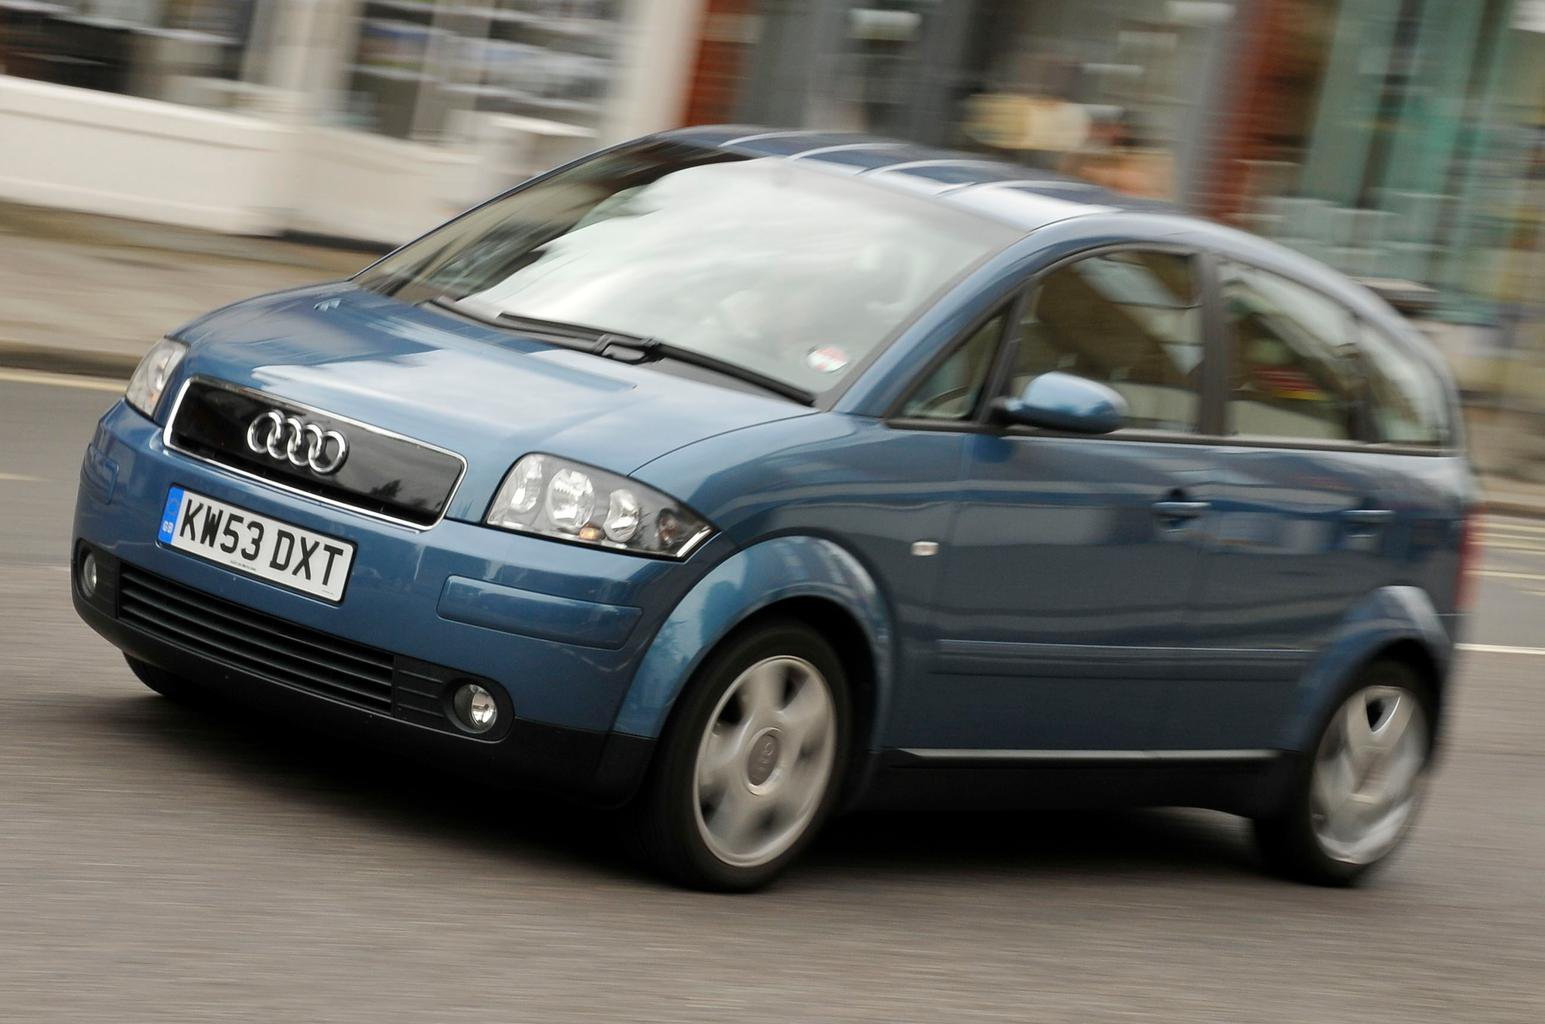 Top 10 used small cars for less than £5000